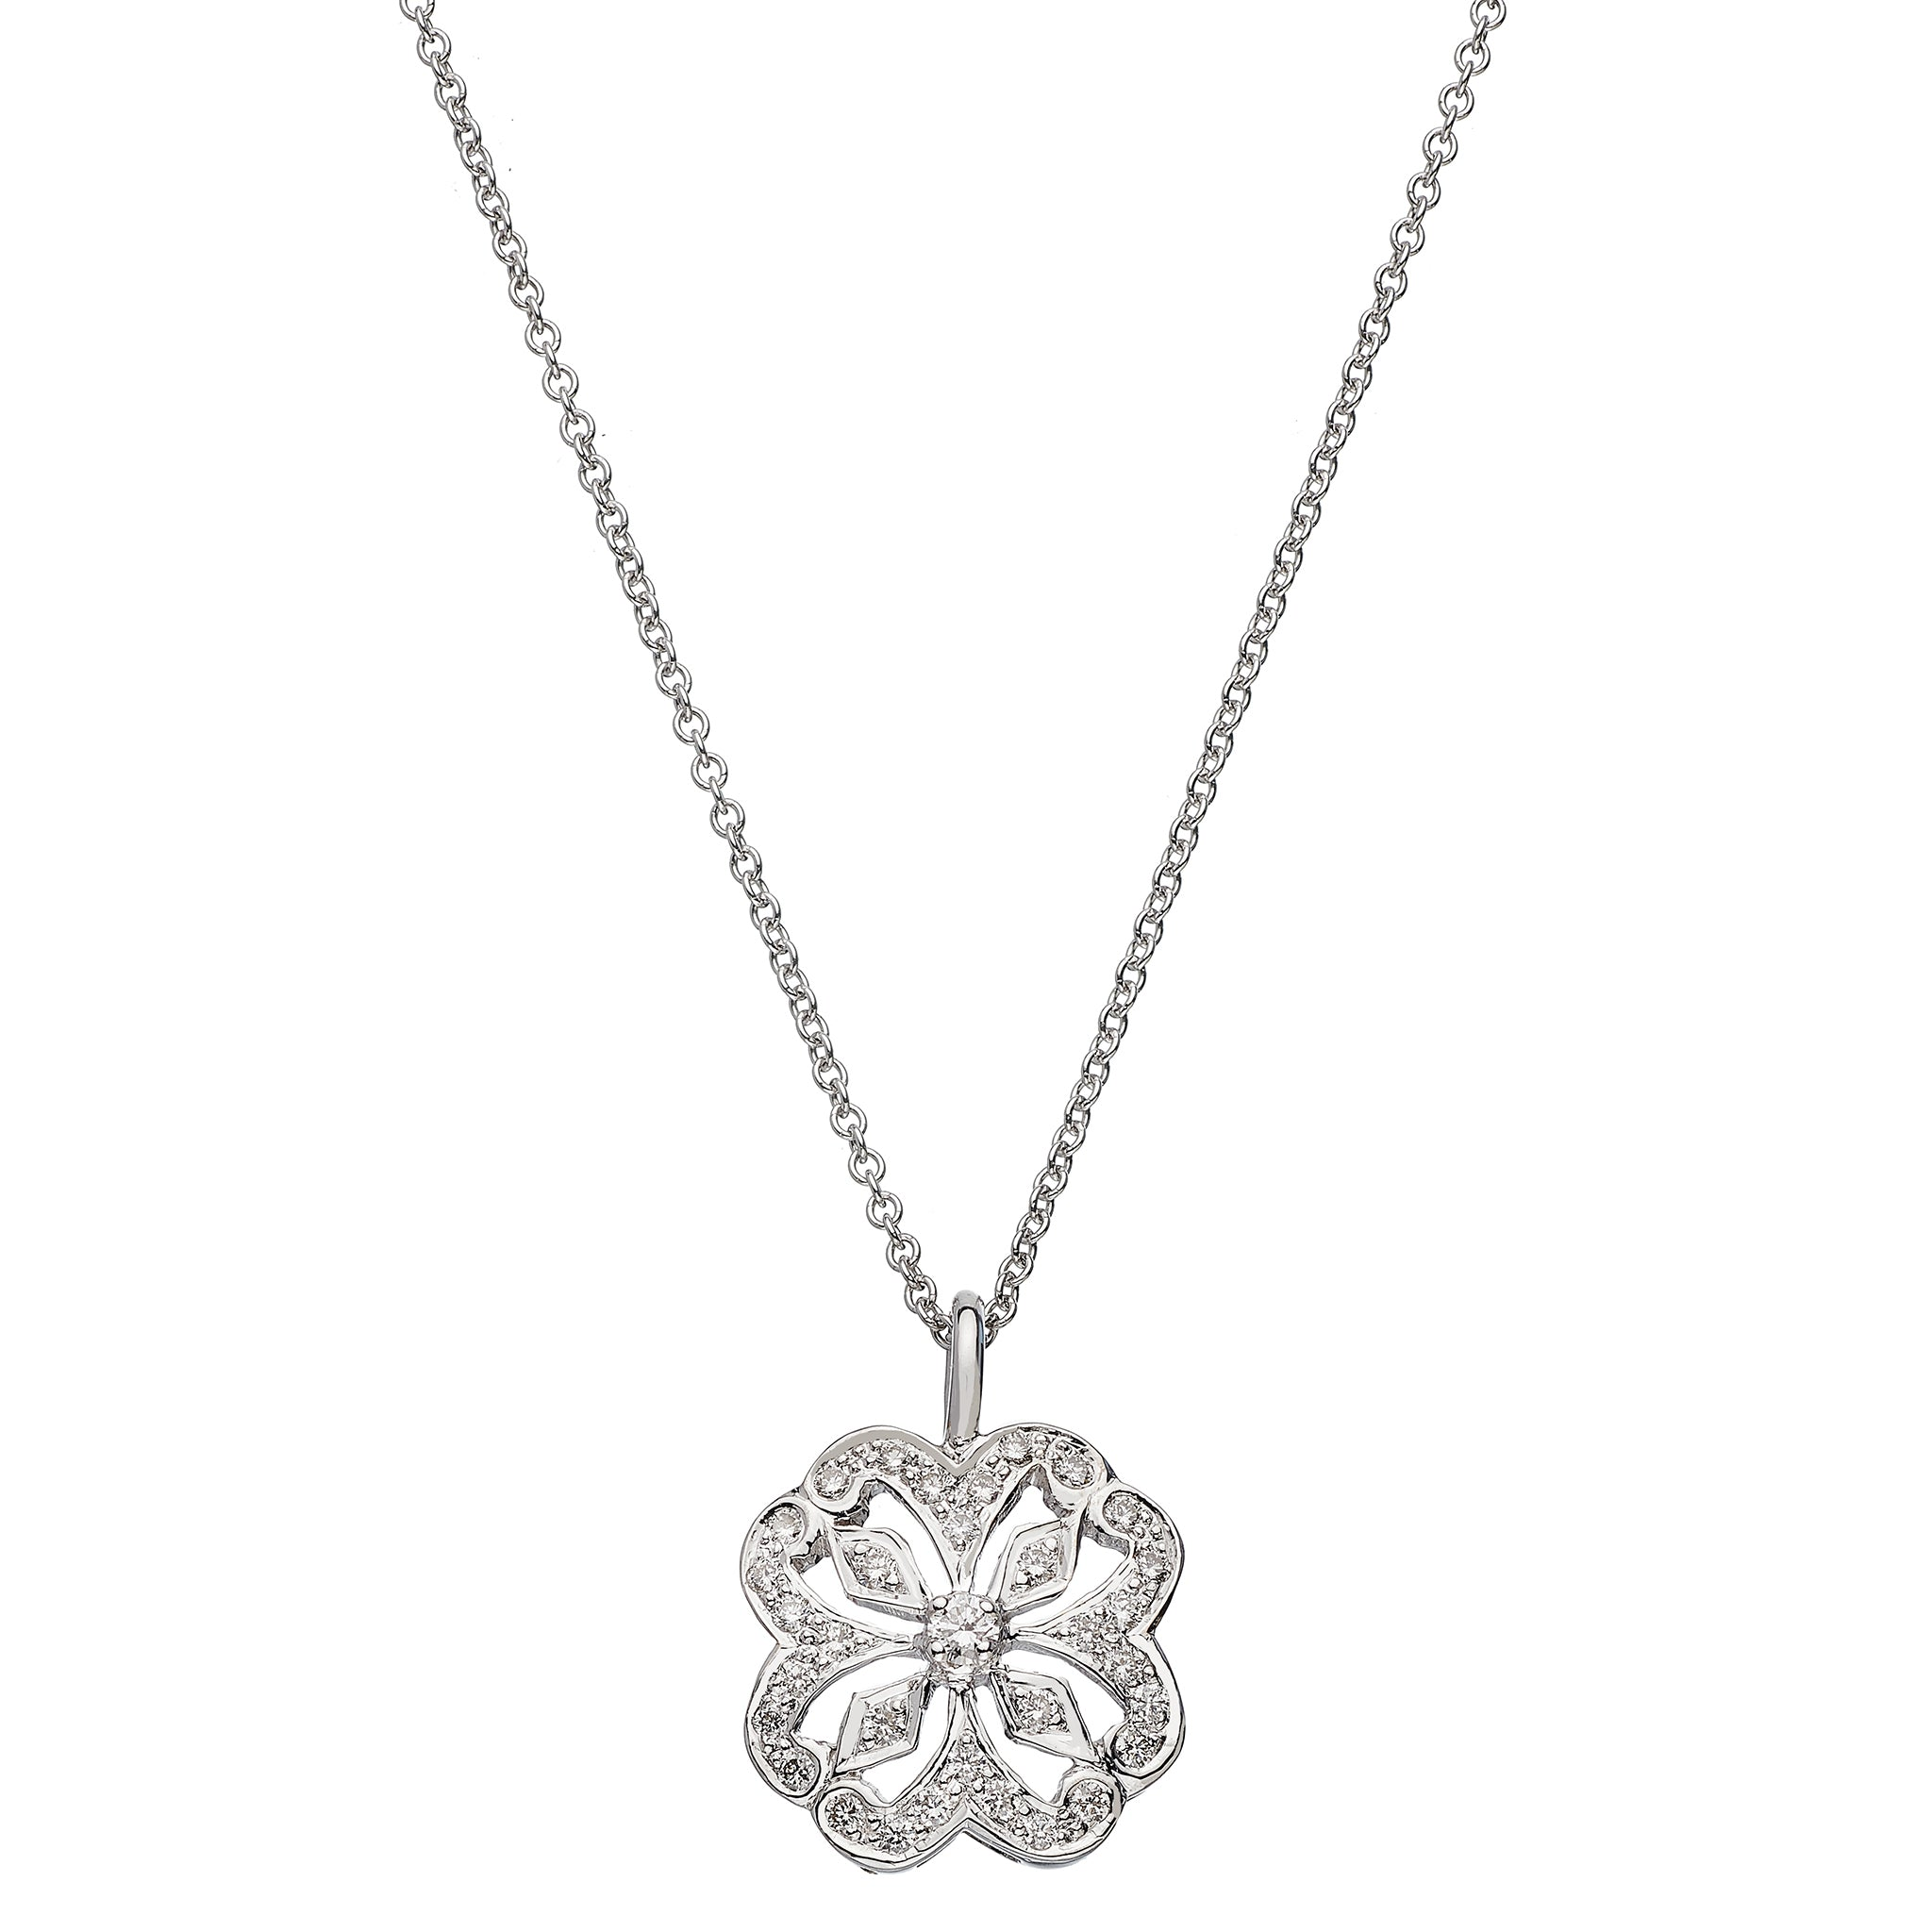 The Clover Necklace